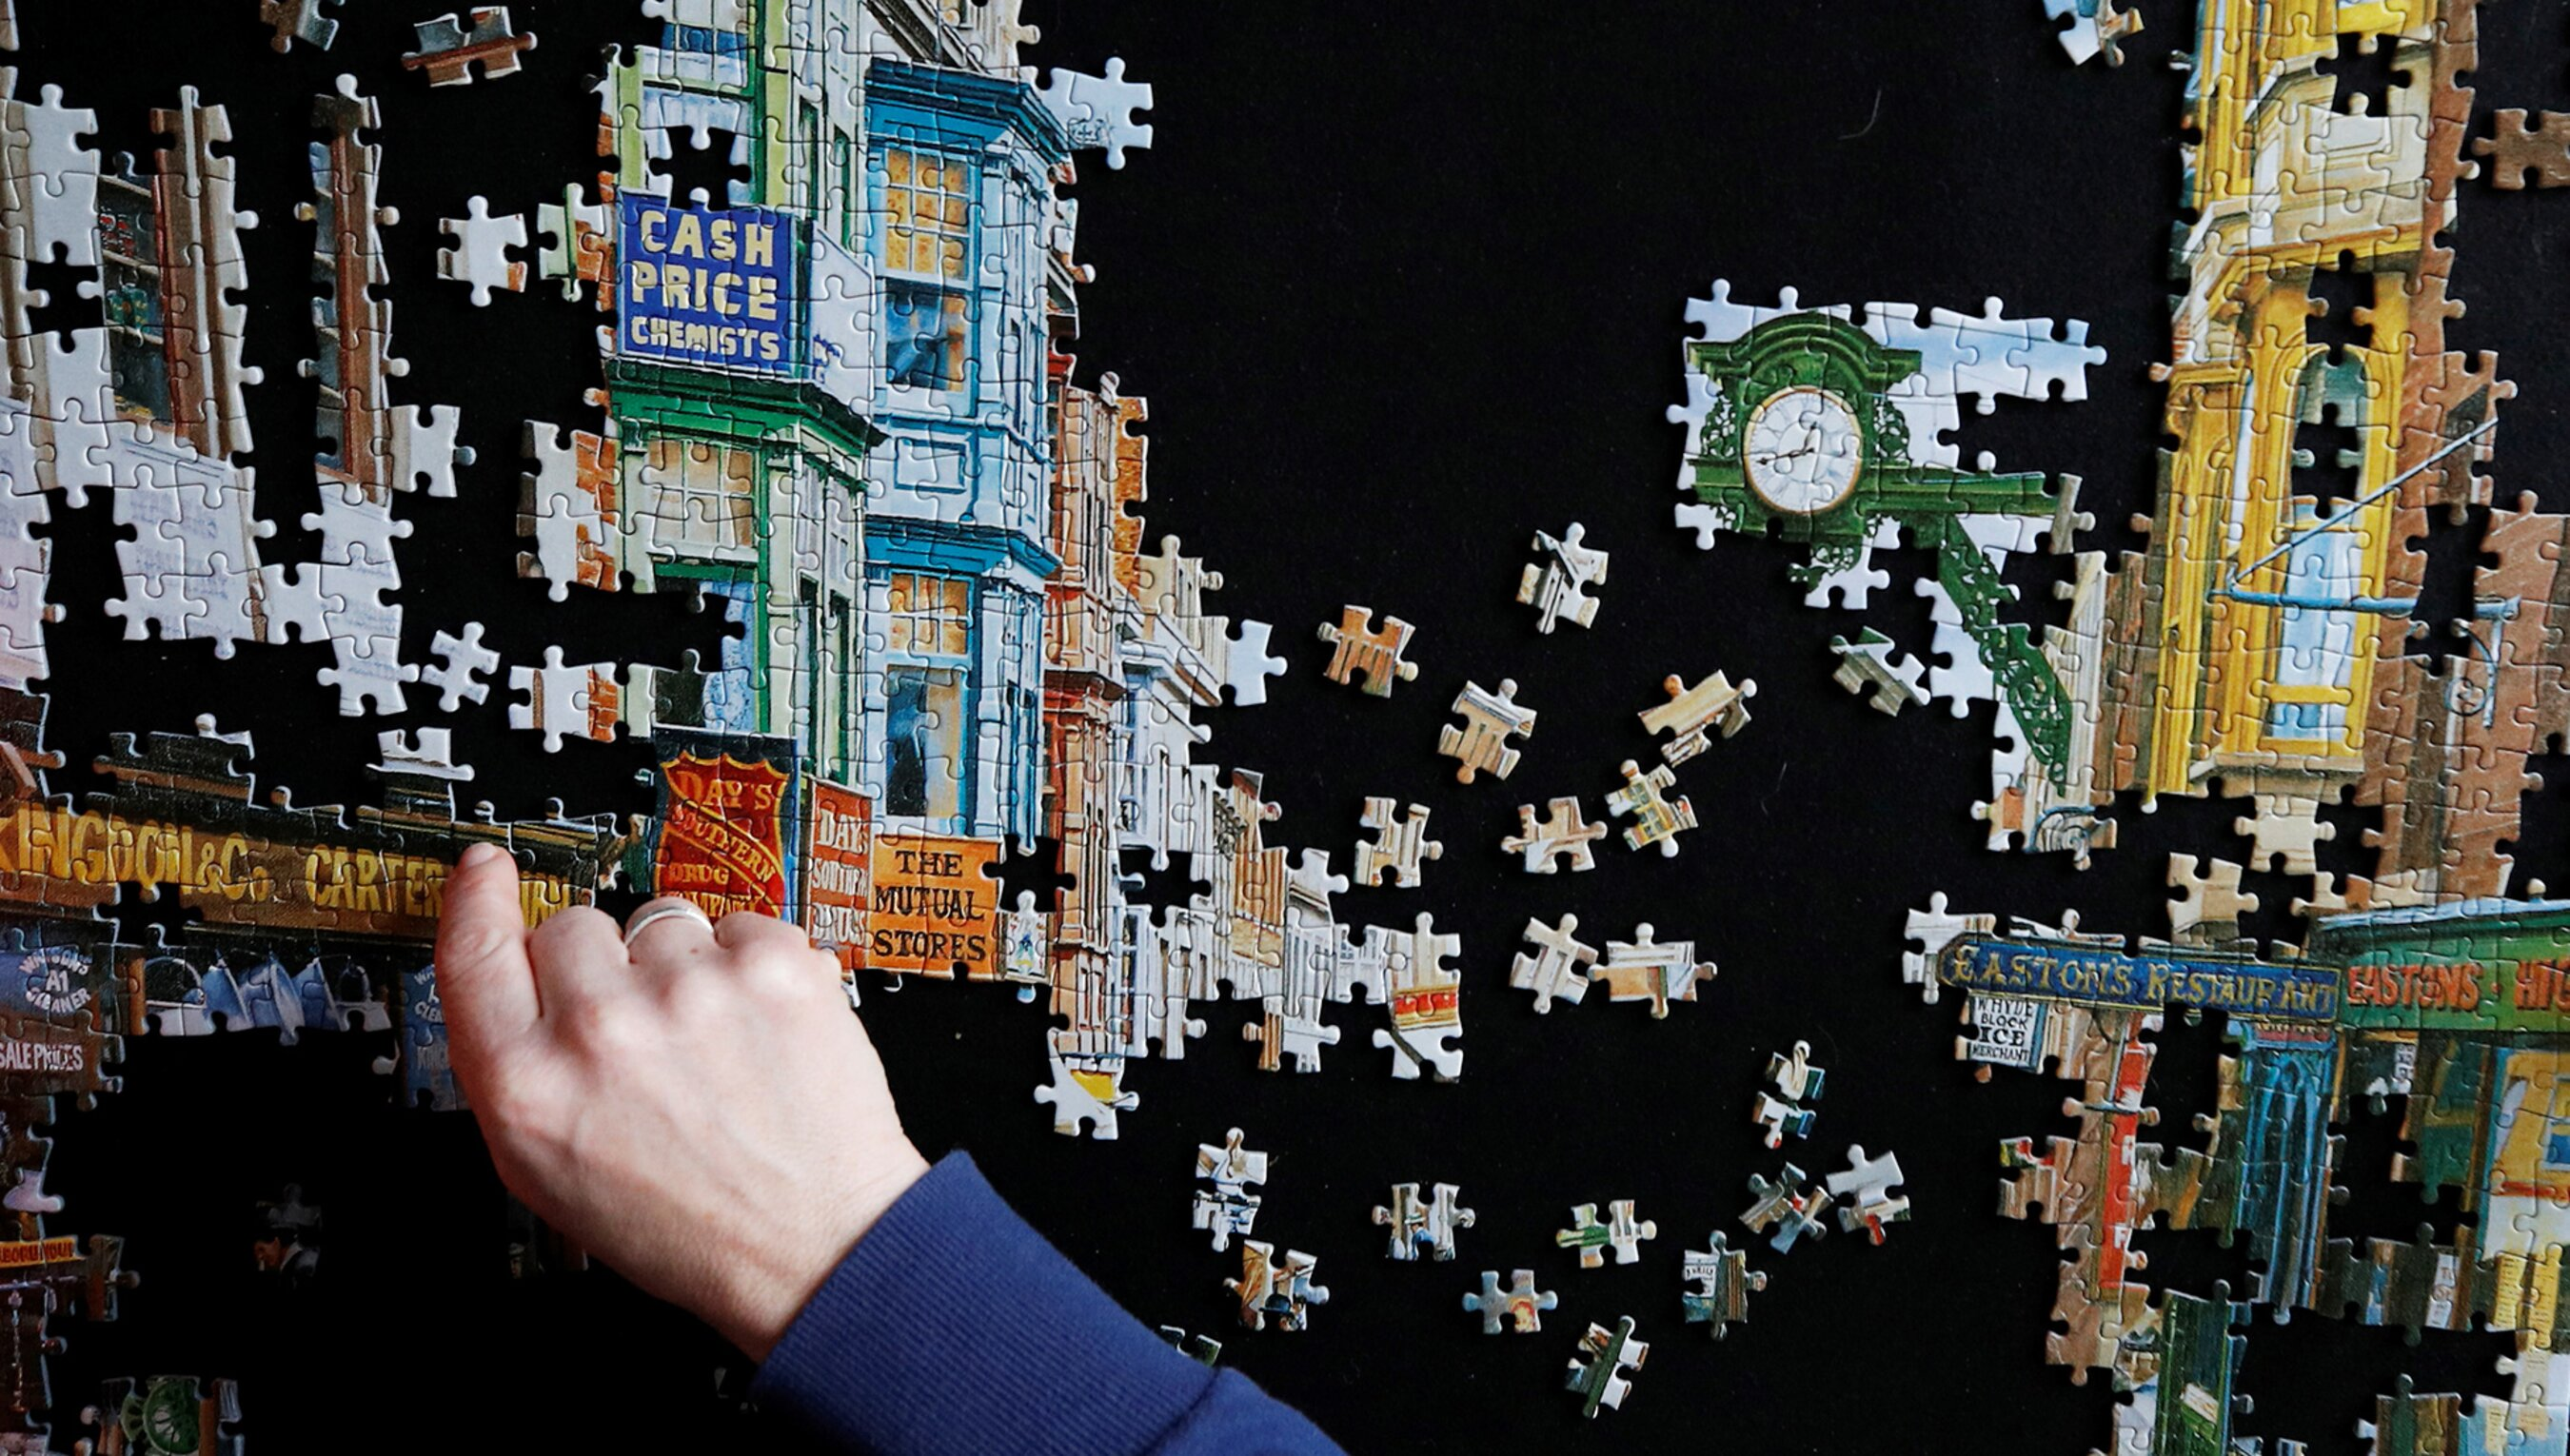 On the consolatory pleasure of jigsaws when the world is in bits | Psyche